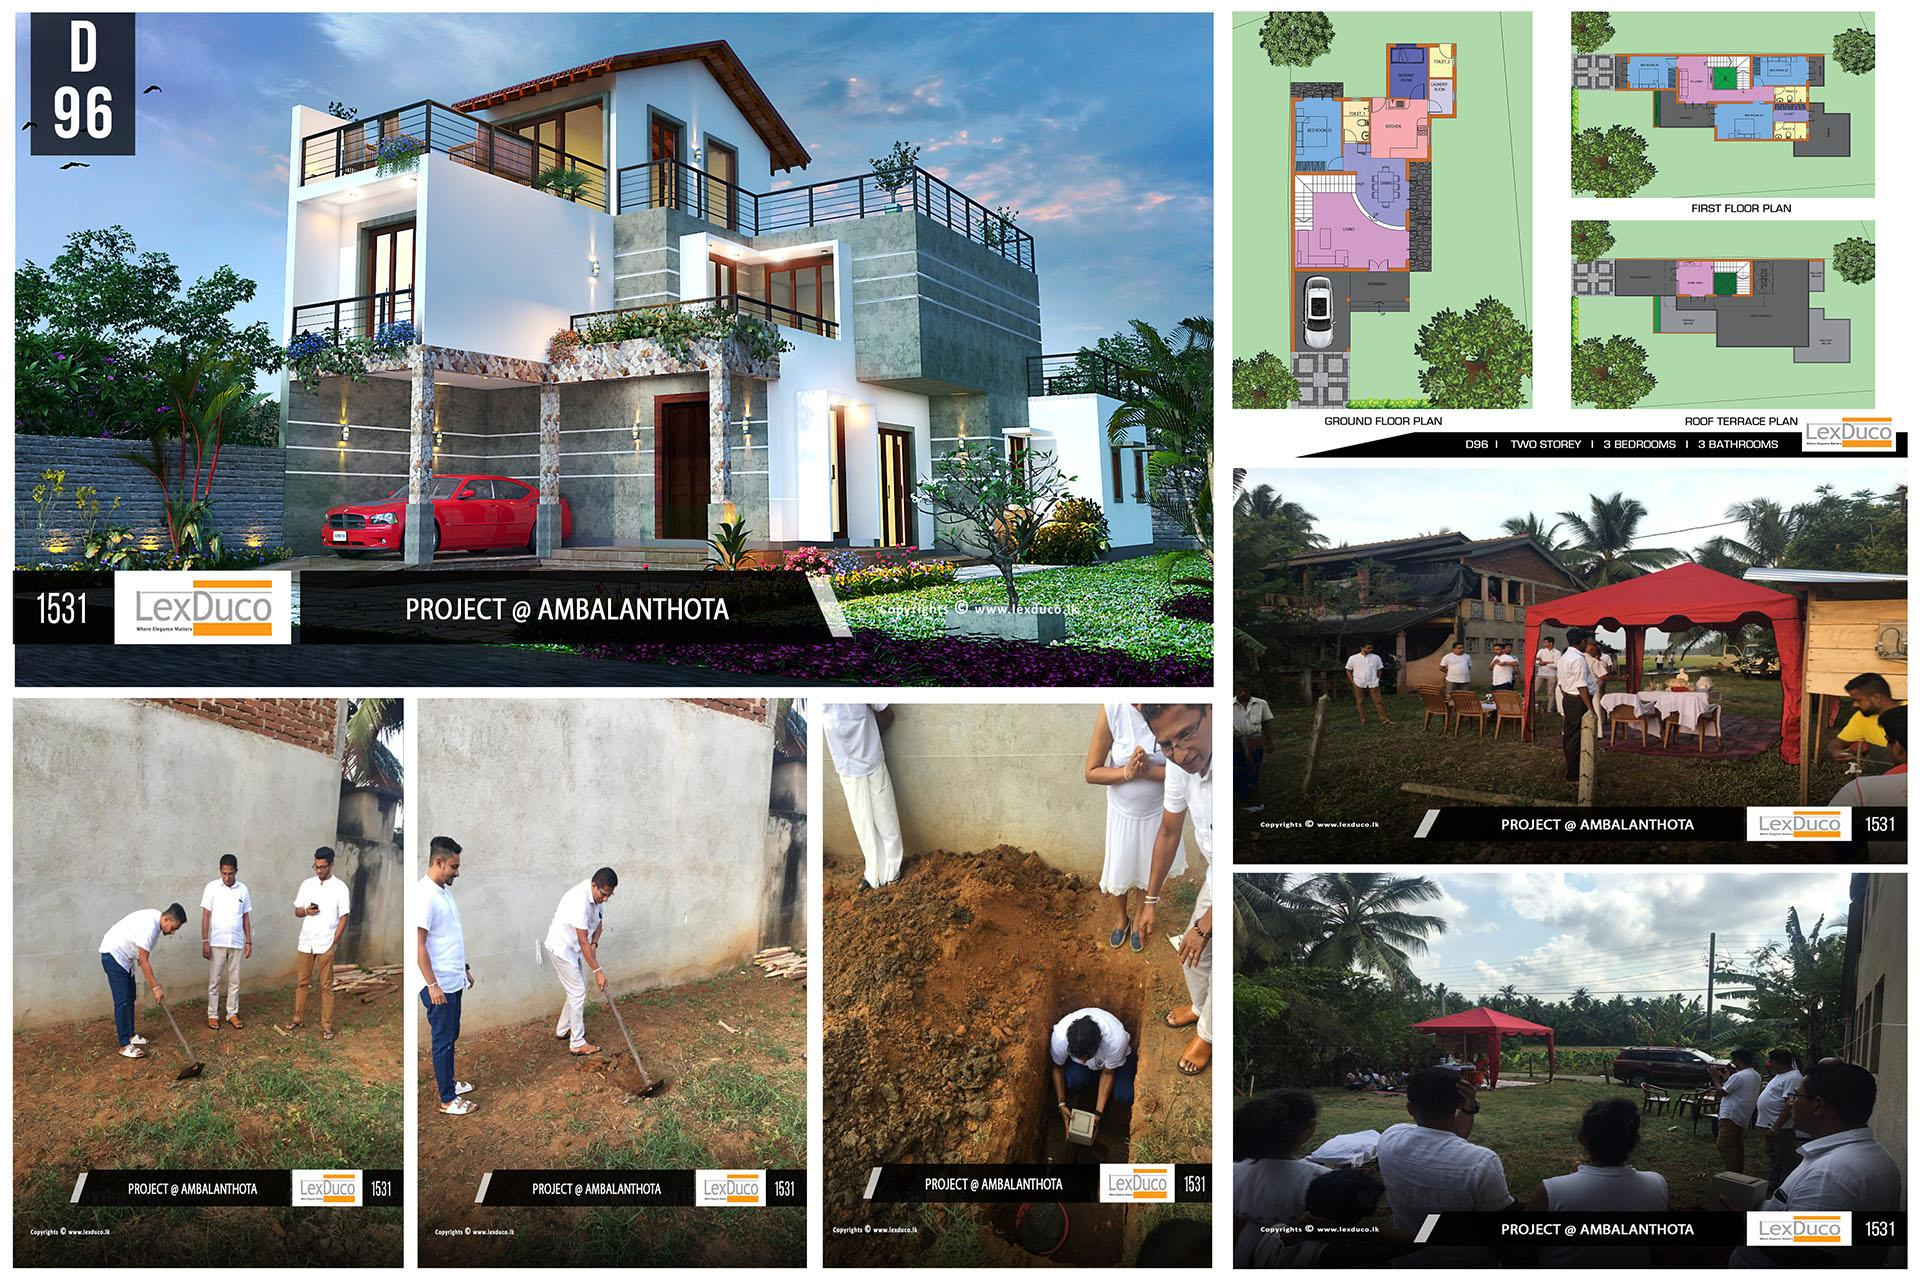 Residential Housing Project at Ambalanthota | Lex Duco